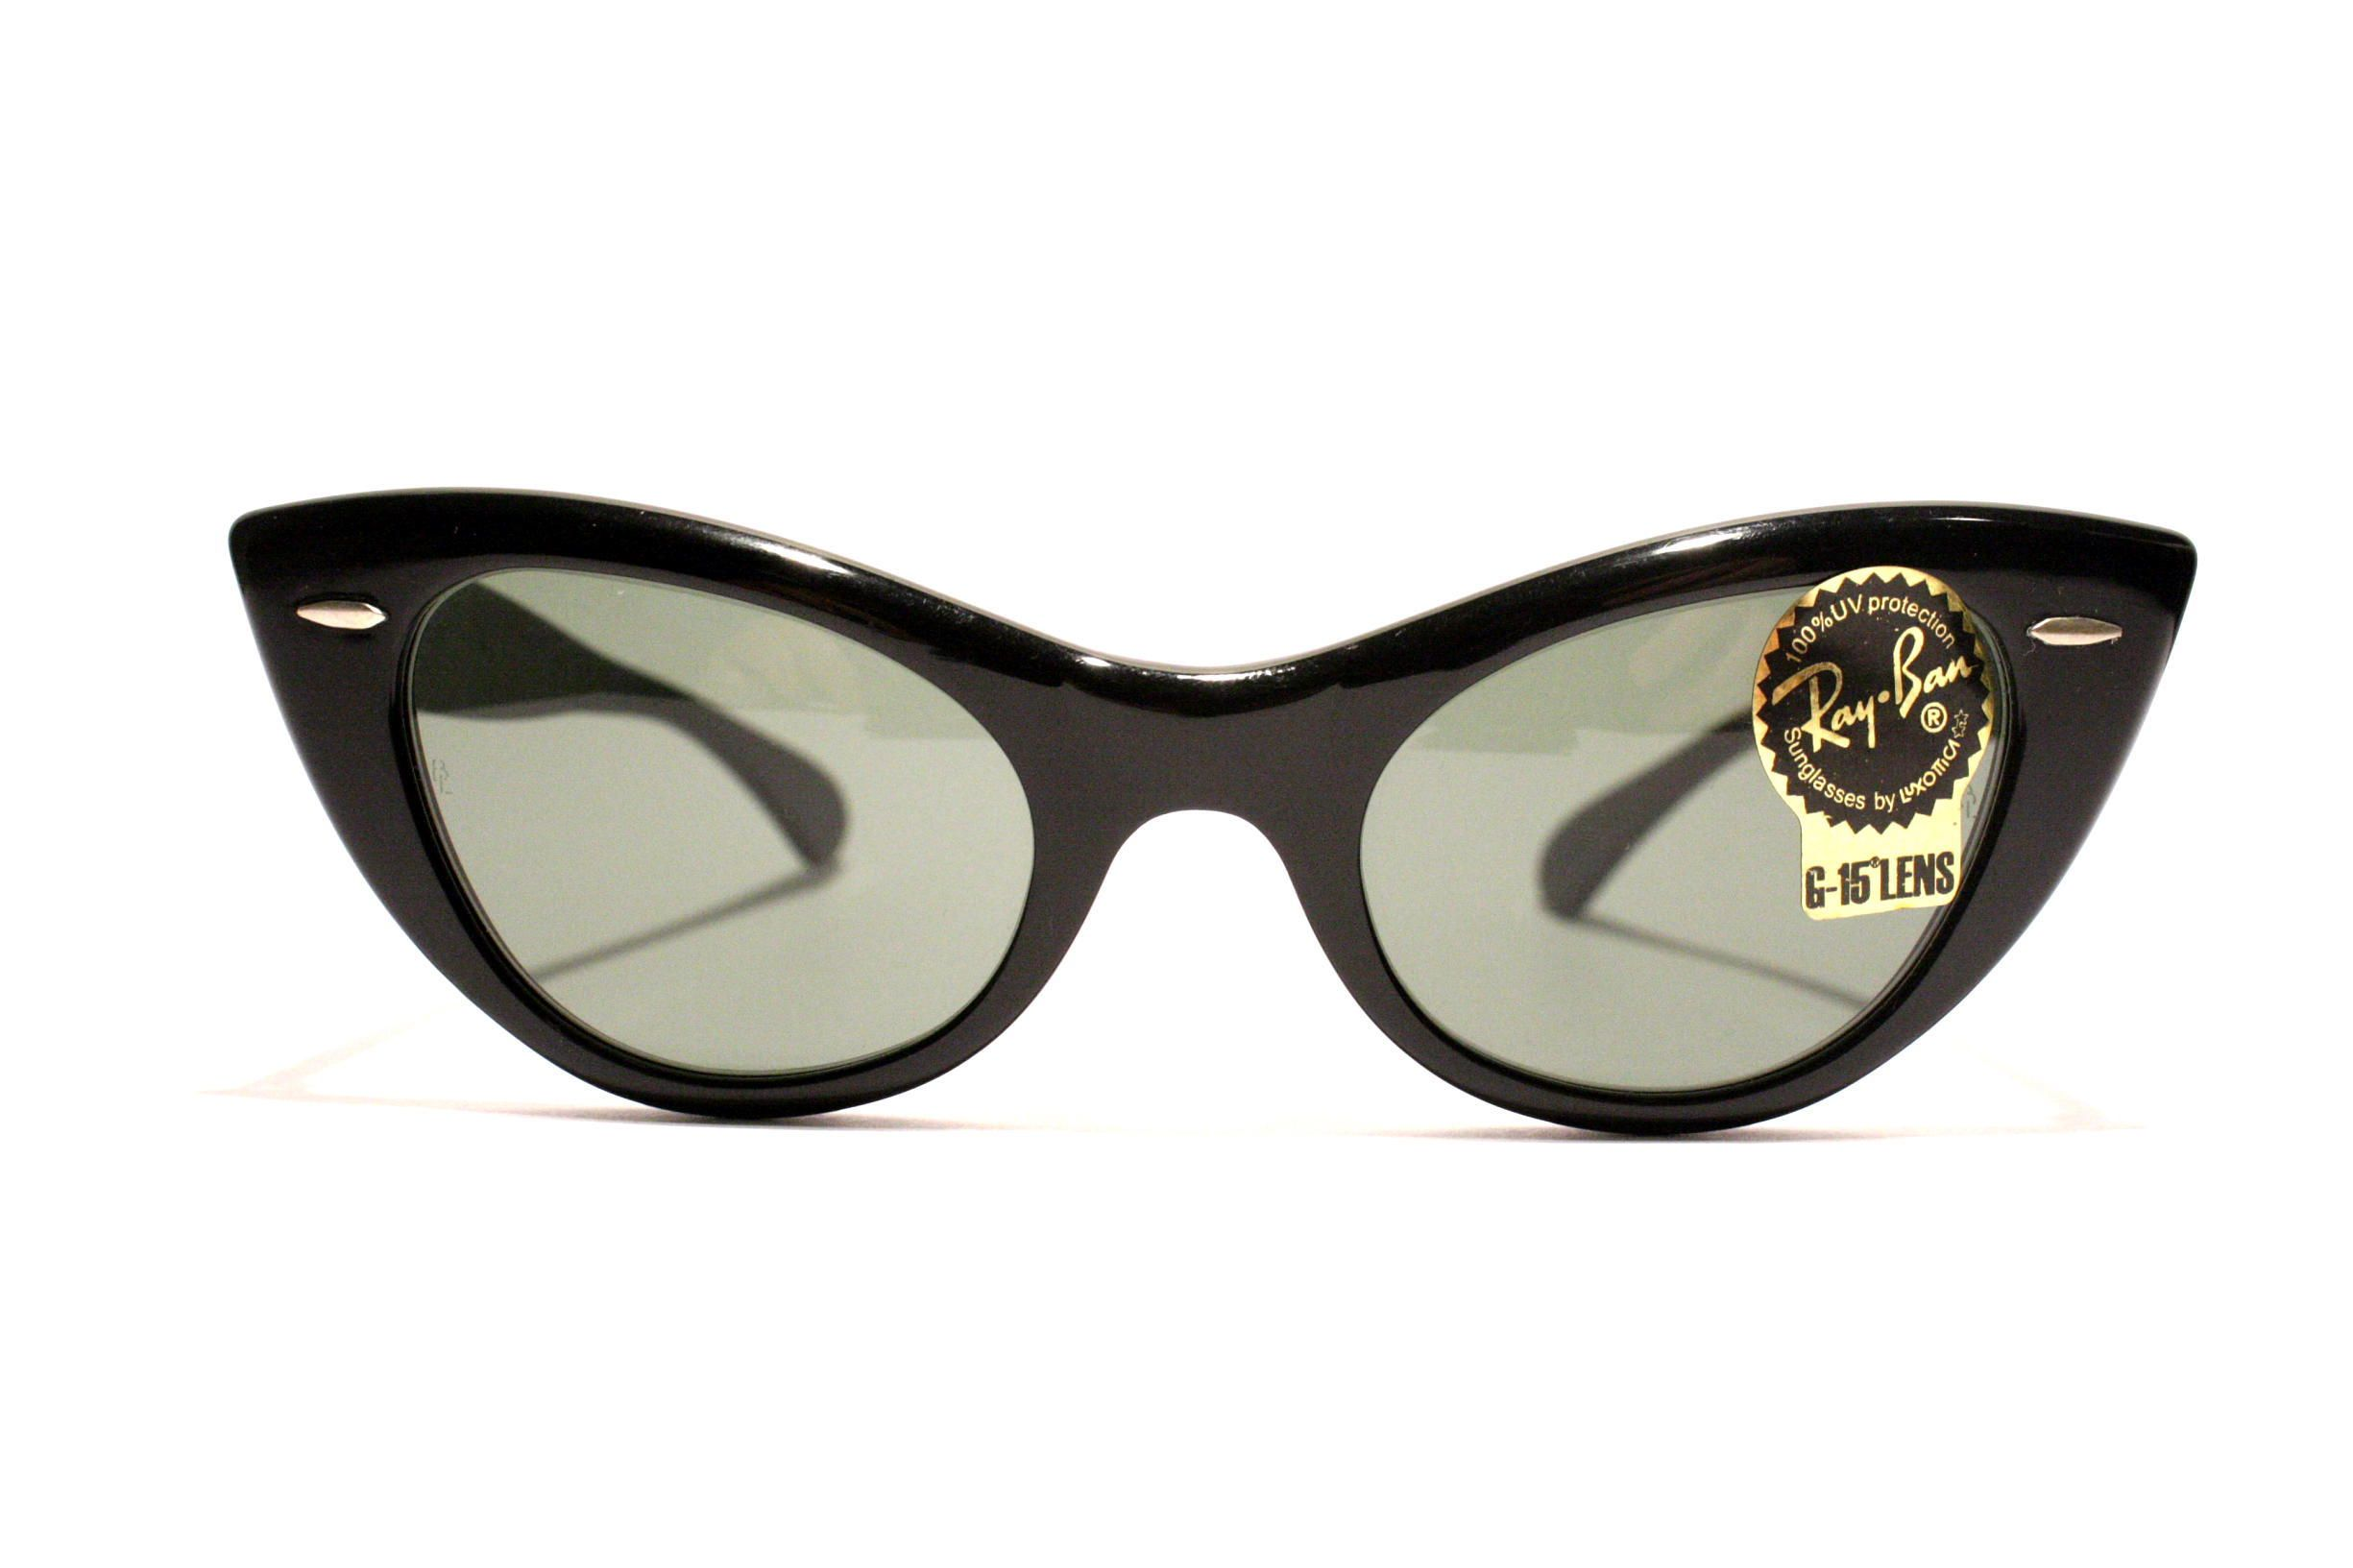 1000+ ideas about Ray Ban Verspiegelt on Pinterest | Ray bans, Ray ban sonnenbrille sale and Michael kors brillen